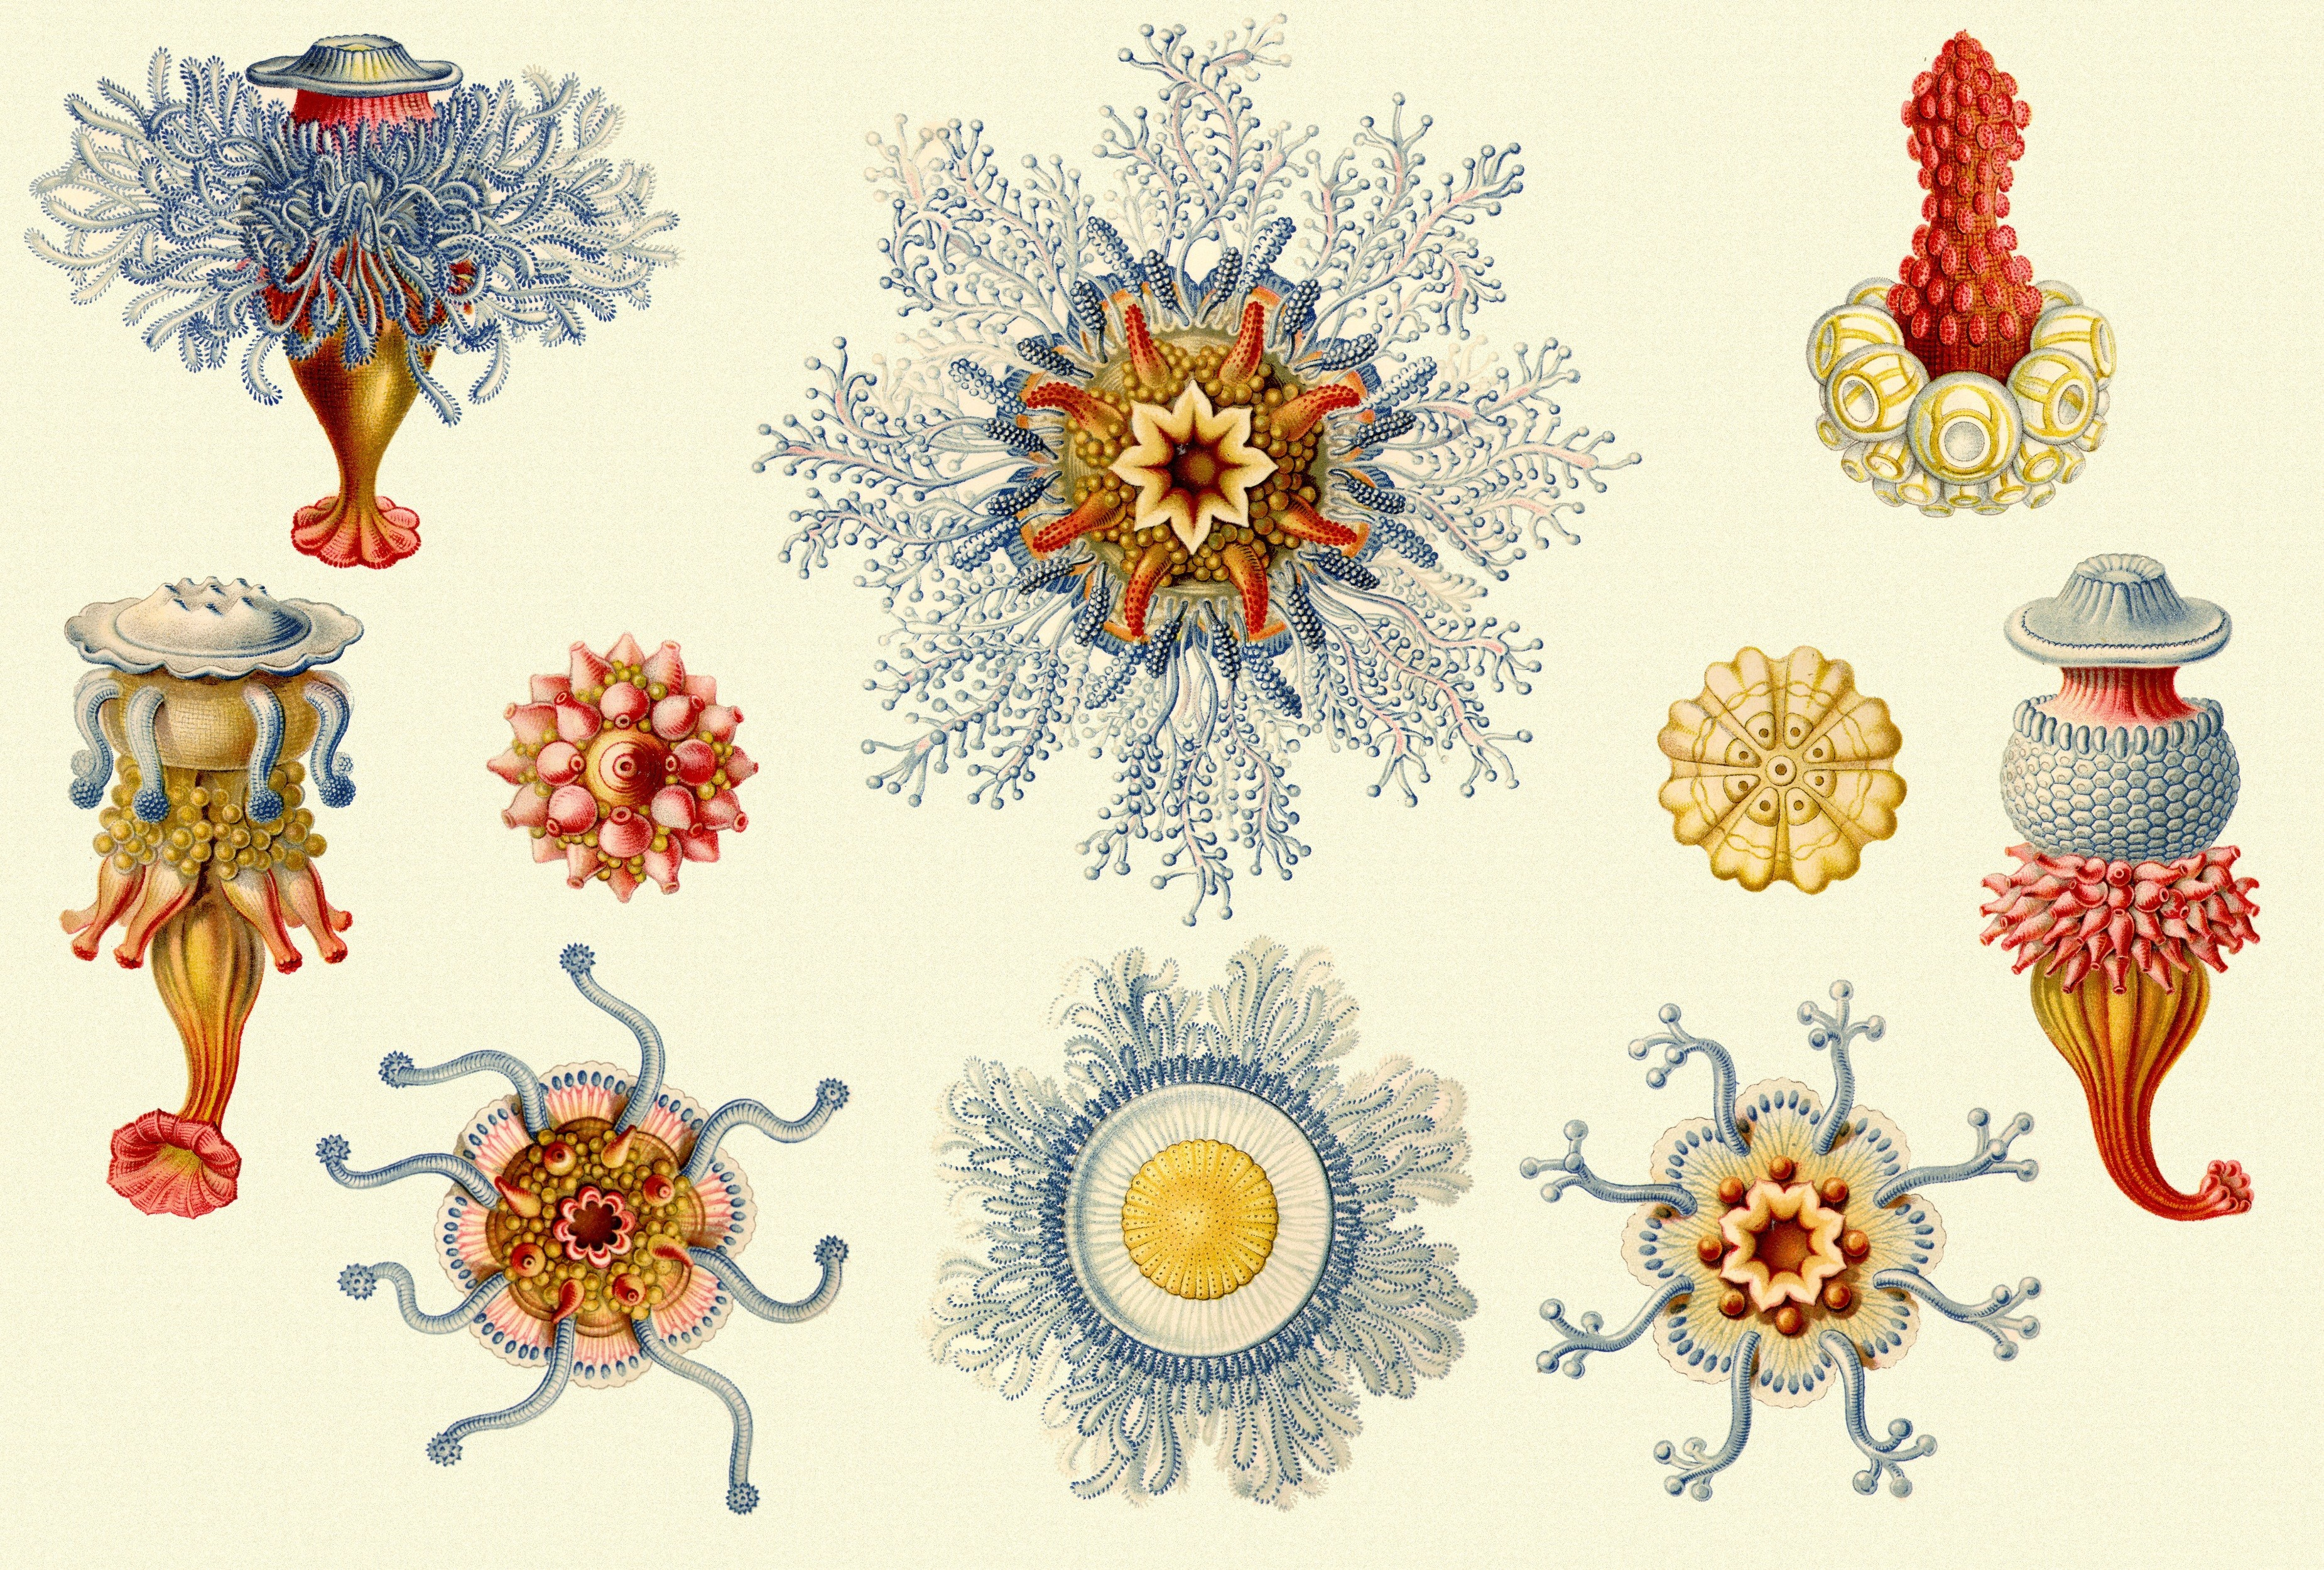 Ernst Haeckel Art Forms